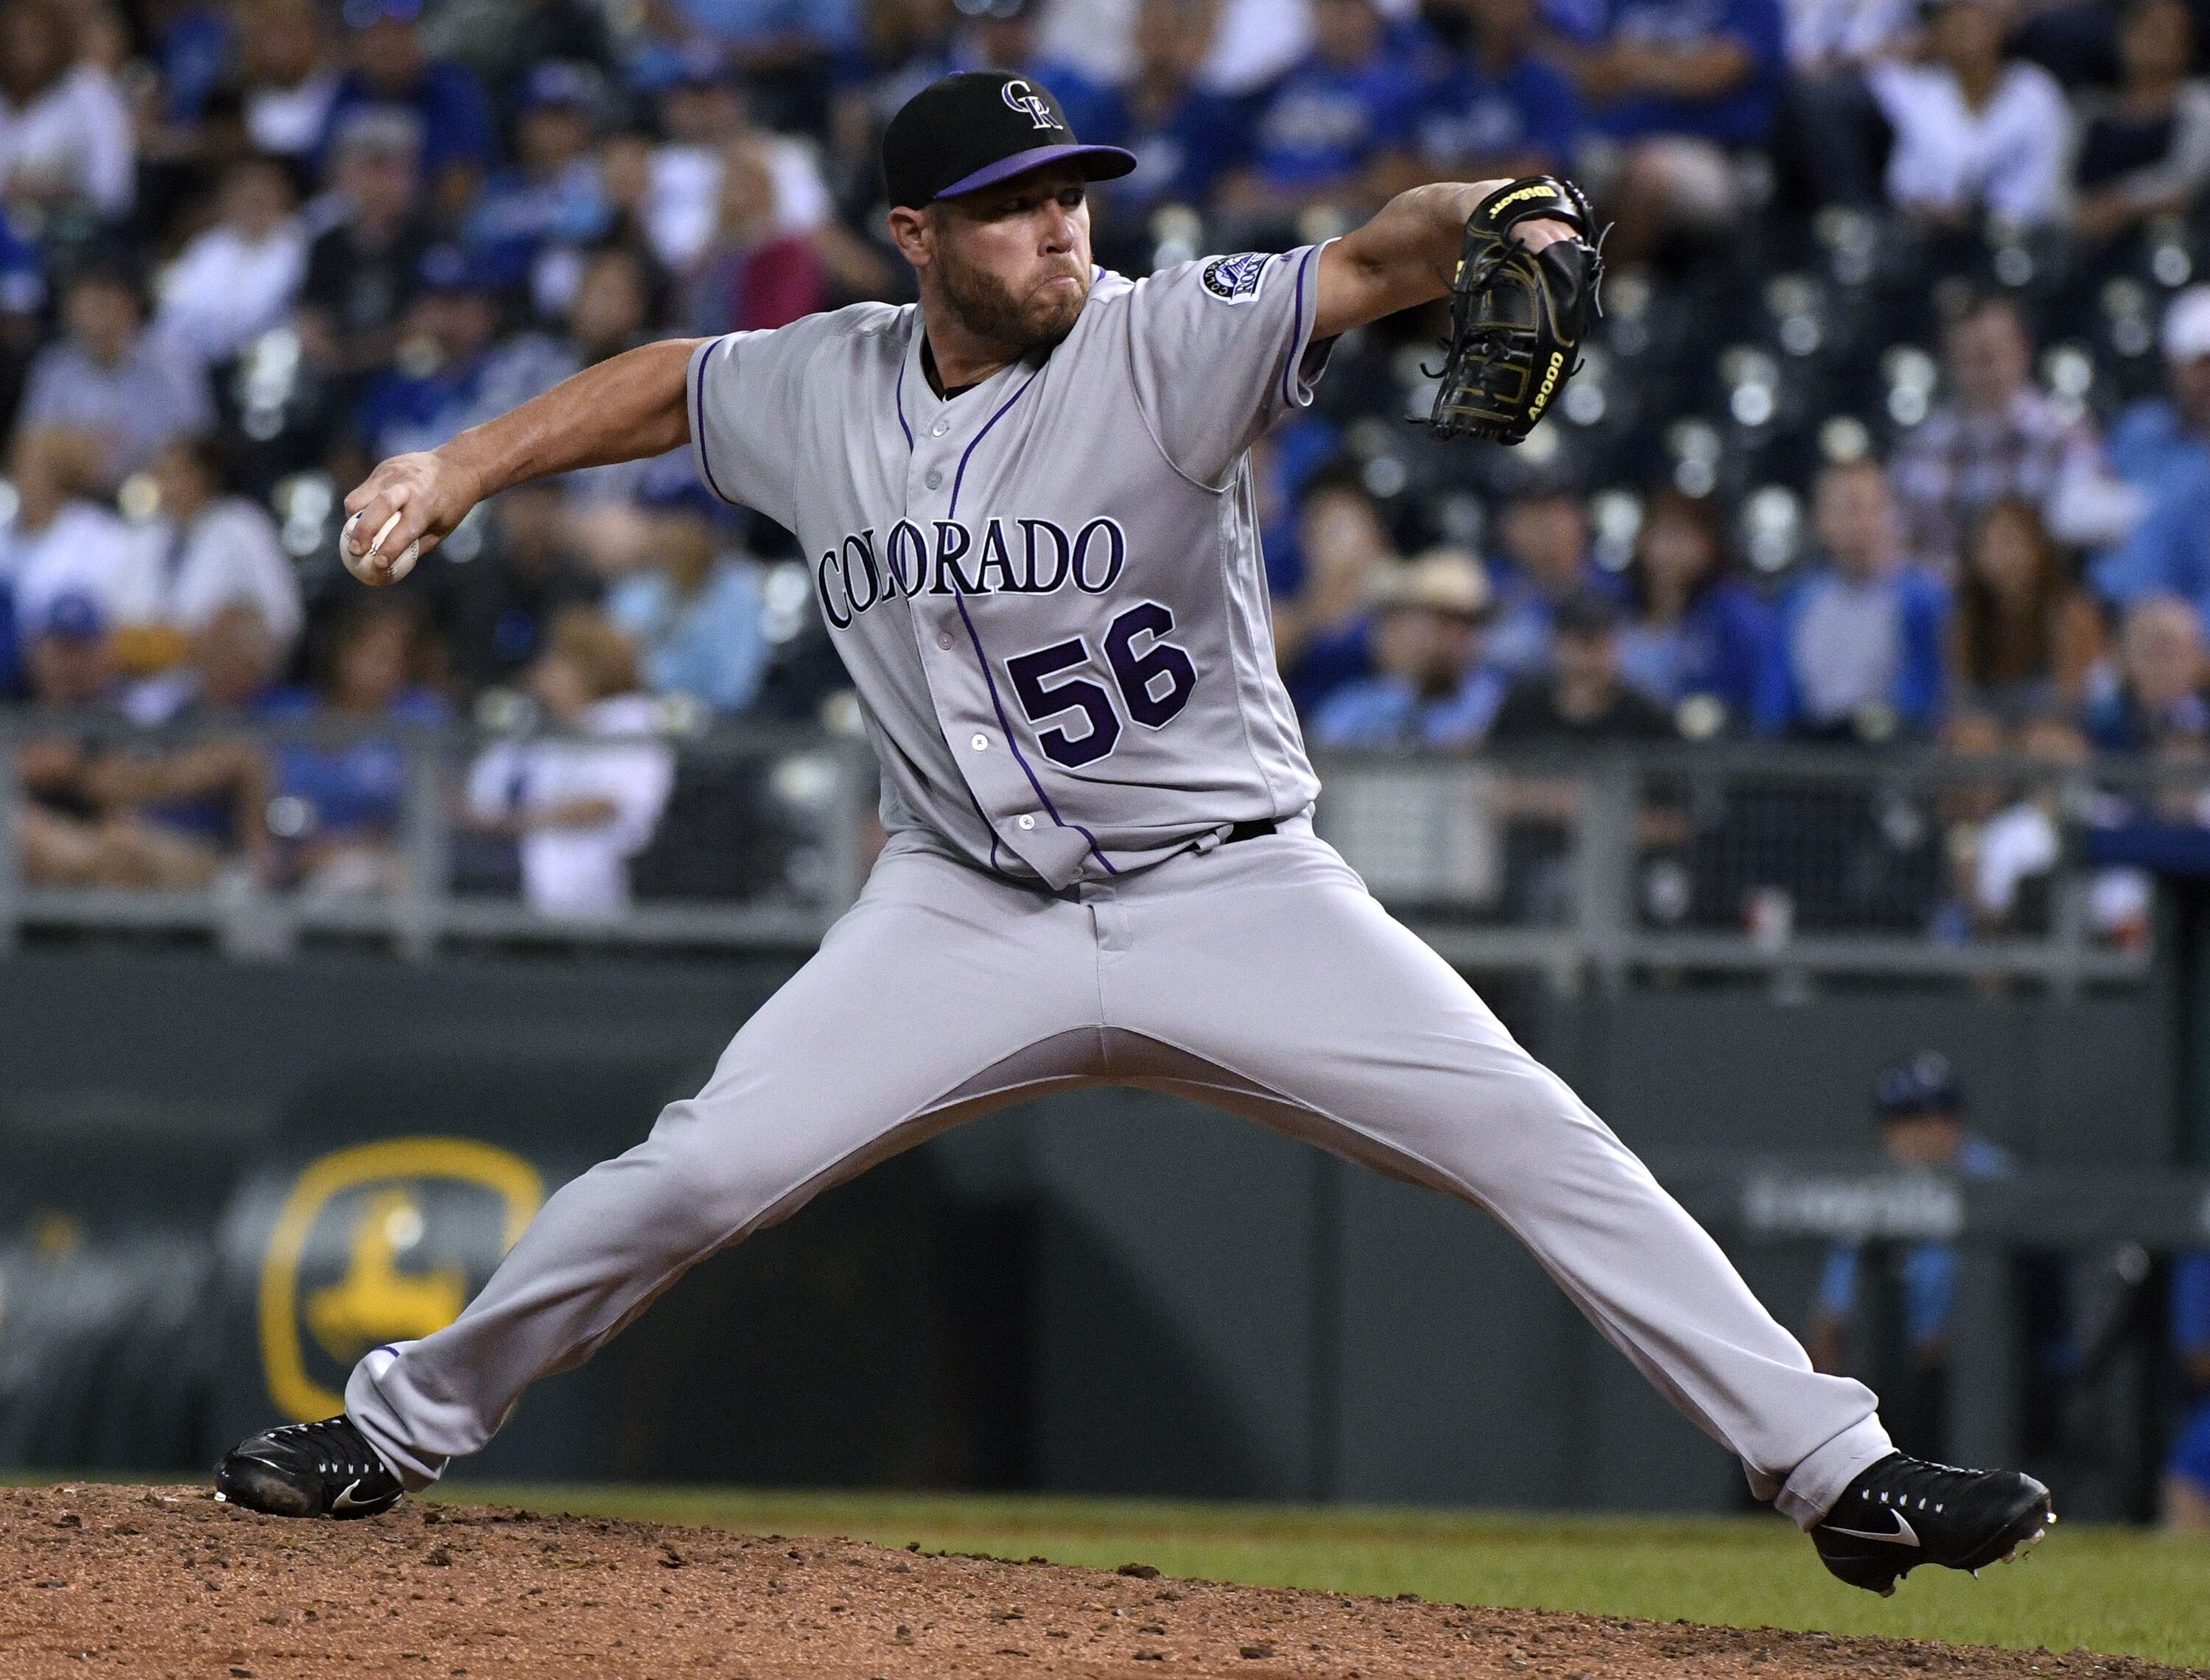 838101086-colorado-rockies-v-kansas-city-royals.jpg